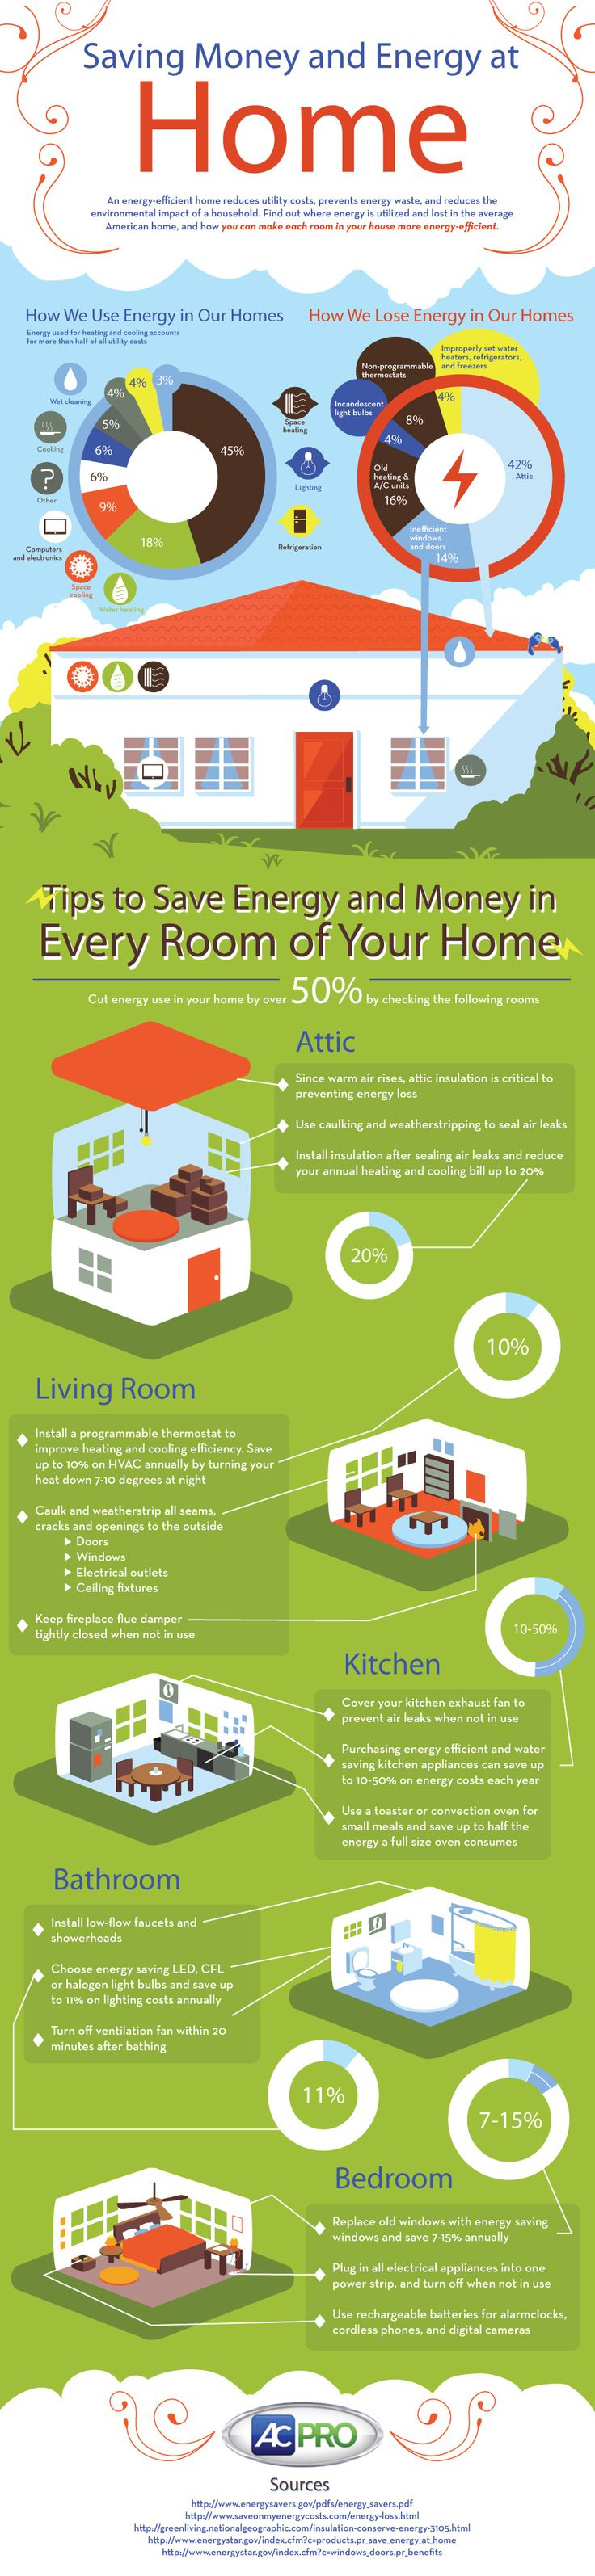 25 best ideas about save energy on pinterest eco for Cost saving ideas for home